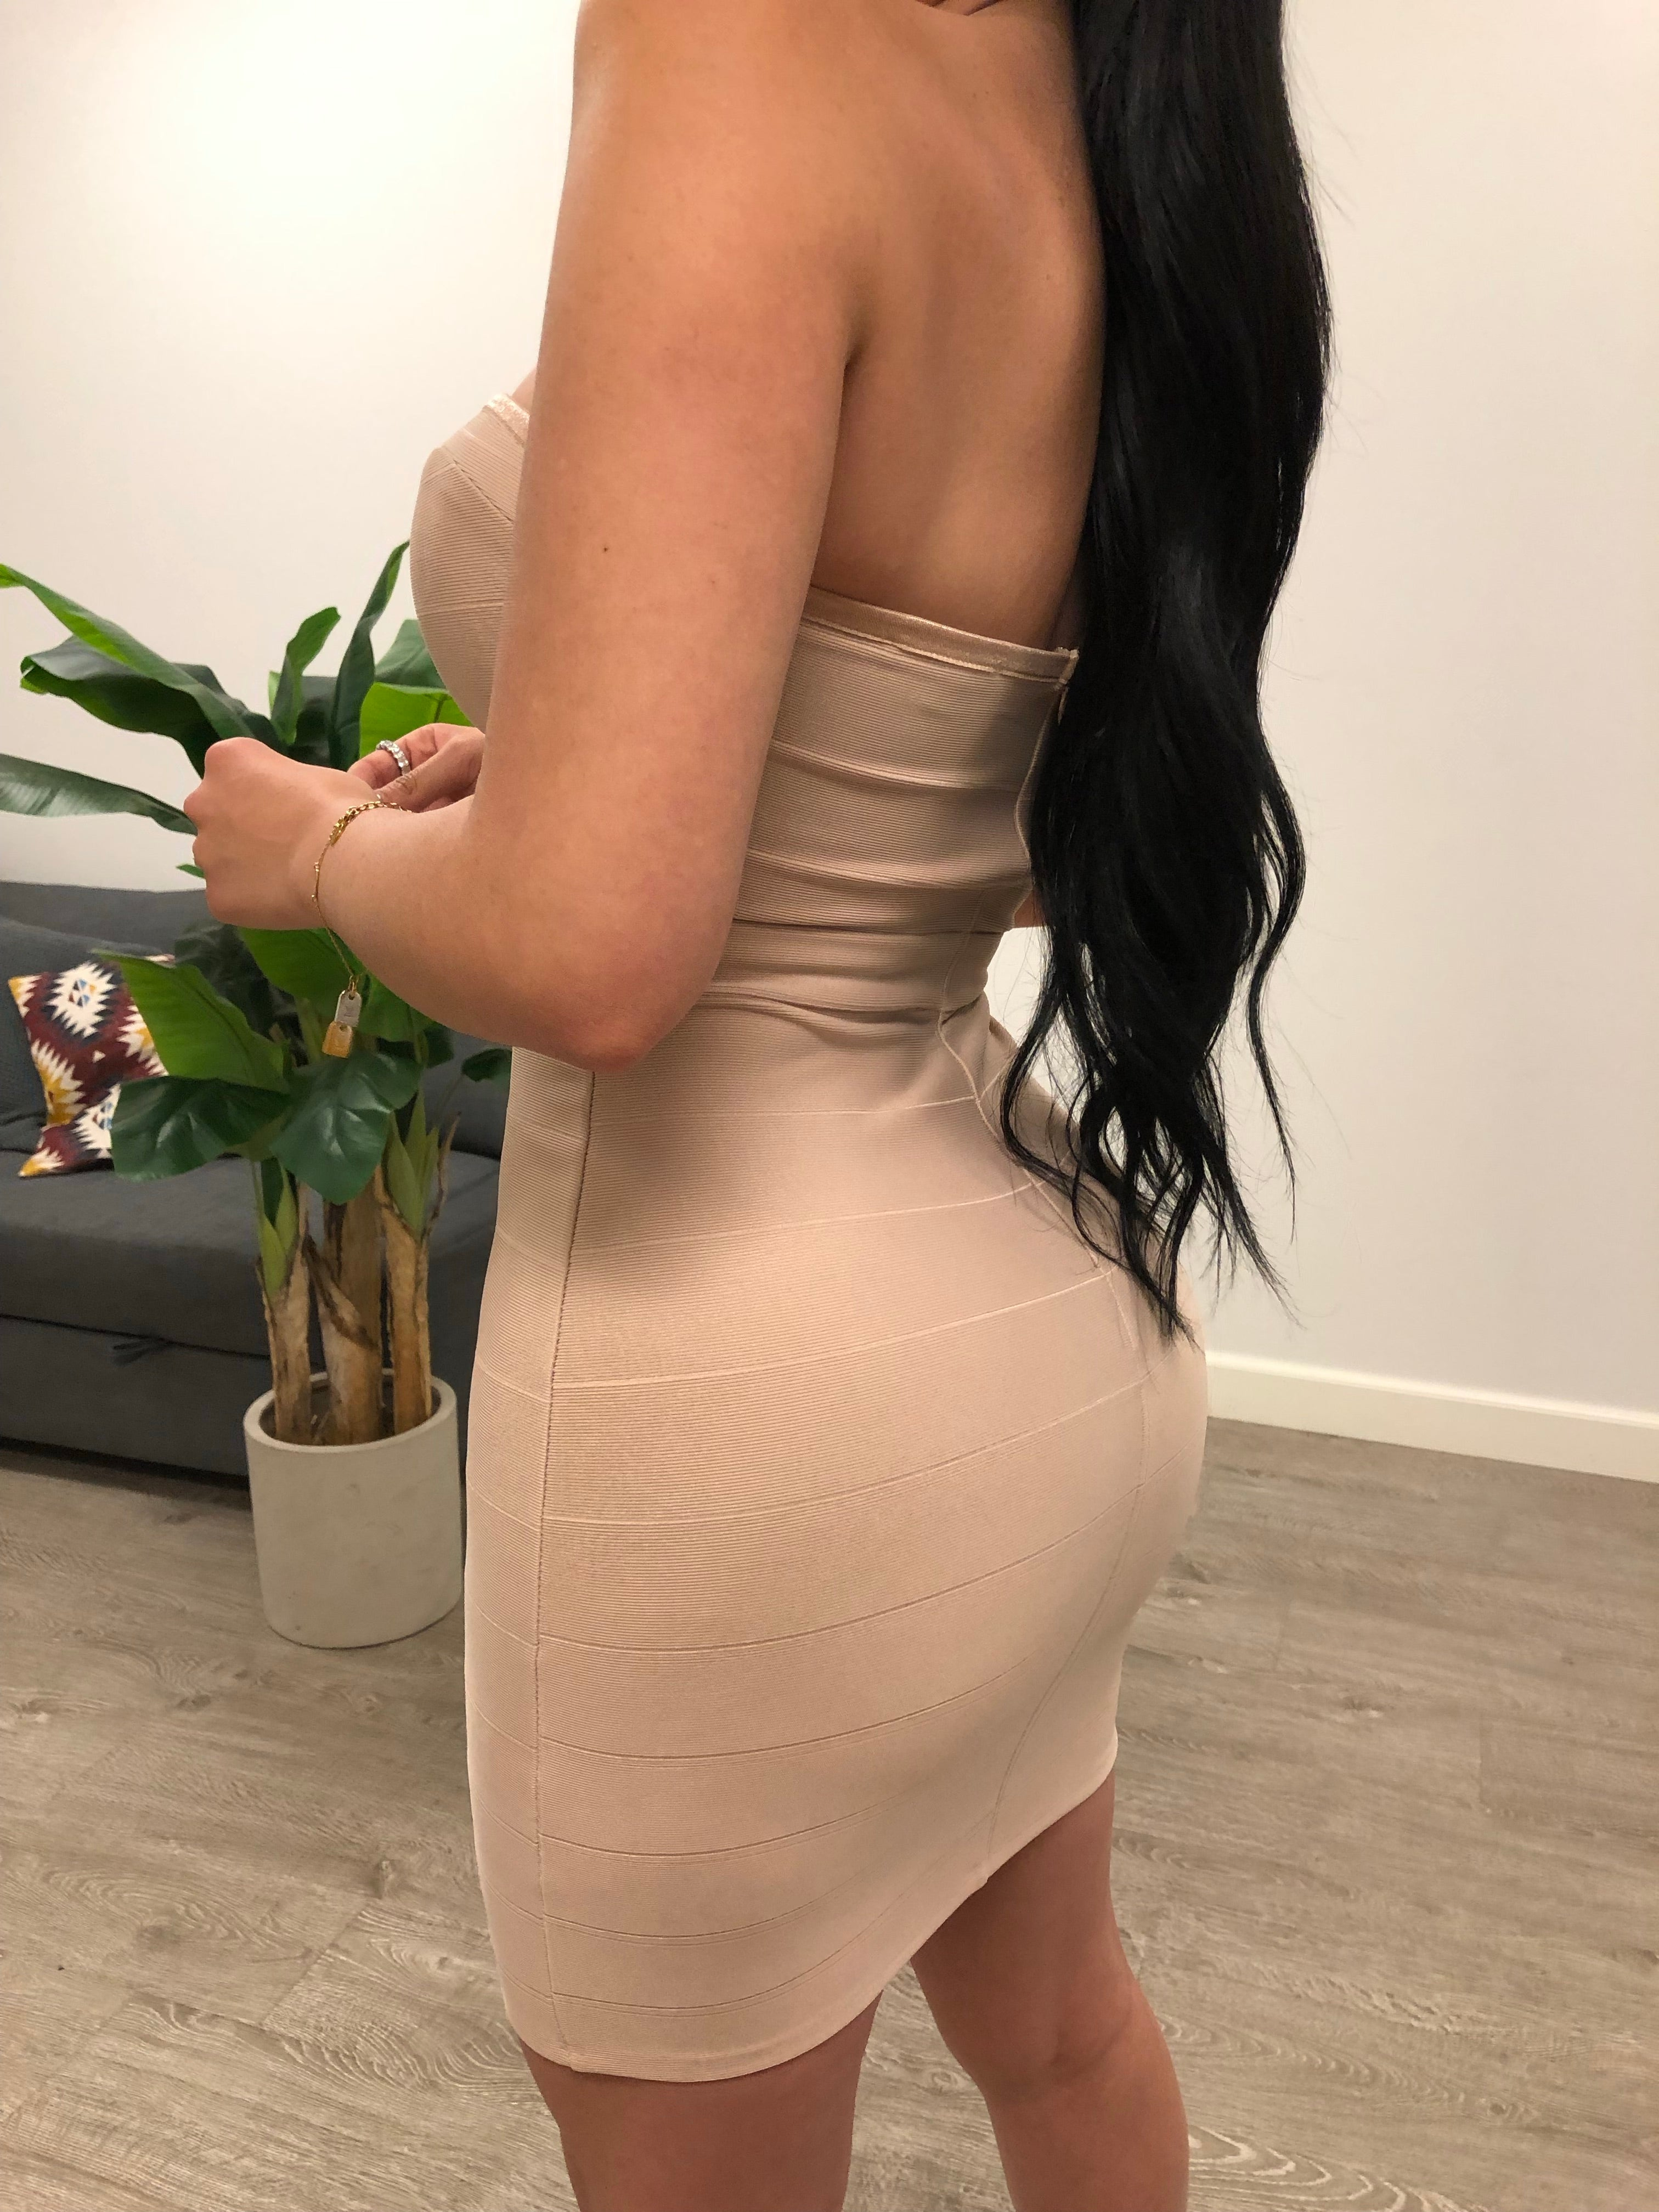 nude color strapless dress with a mesh cleavage area. dress length is to mid thigh